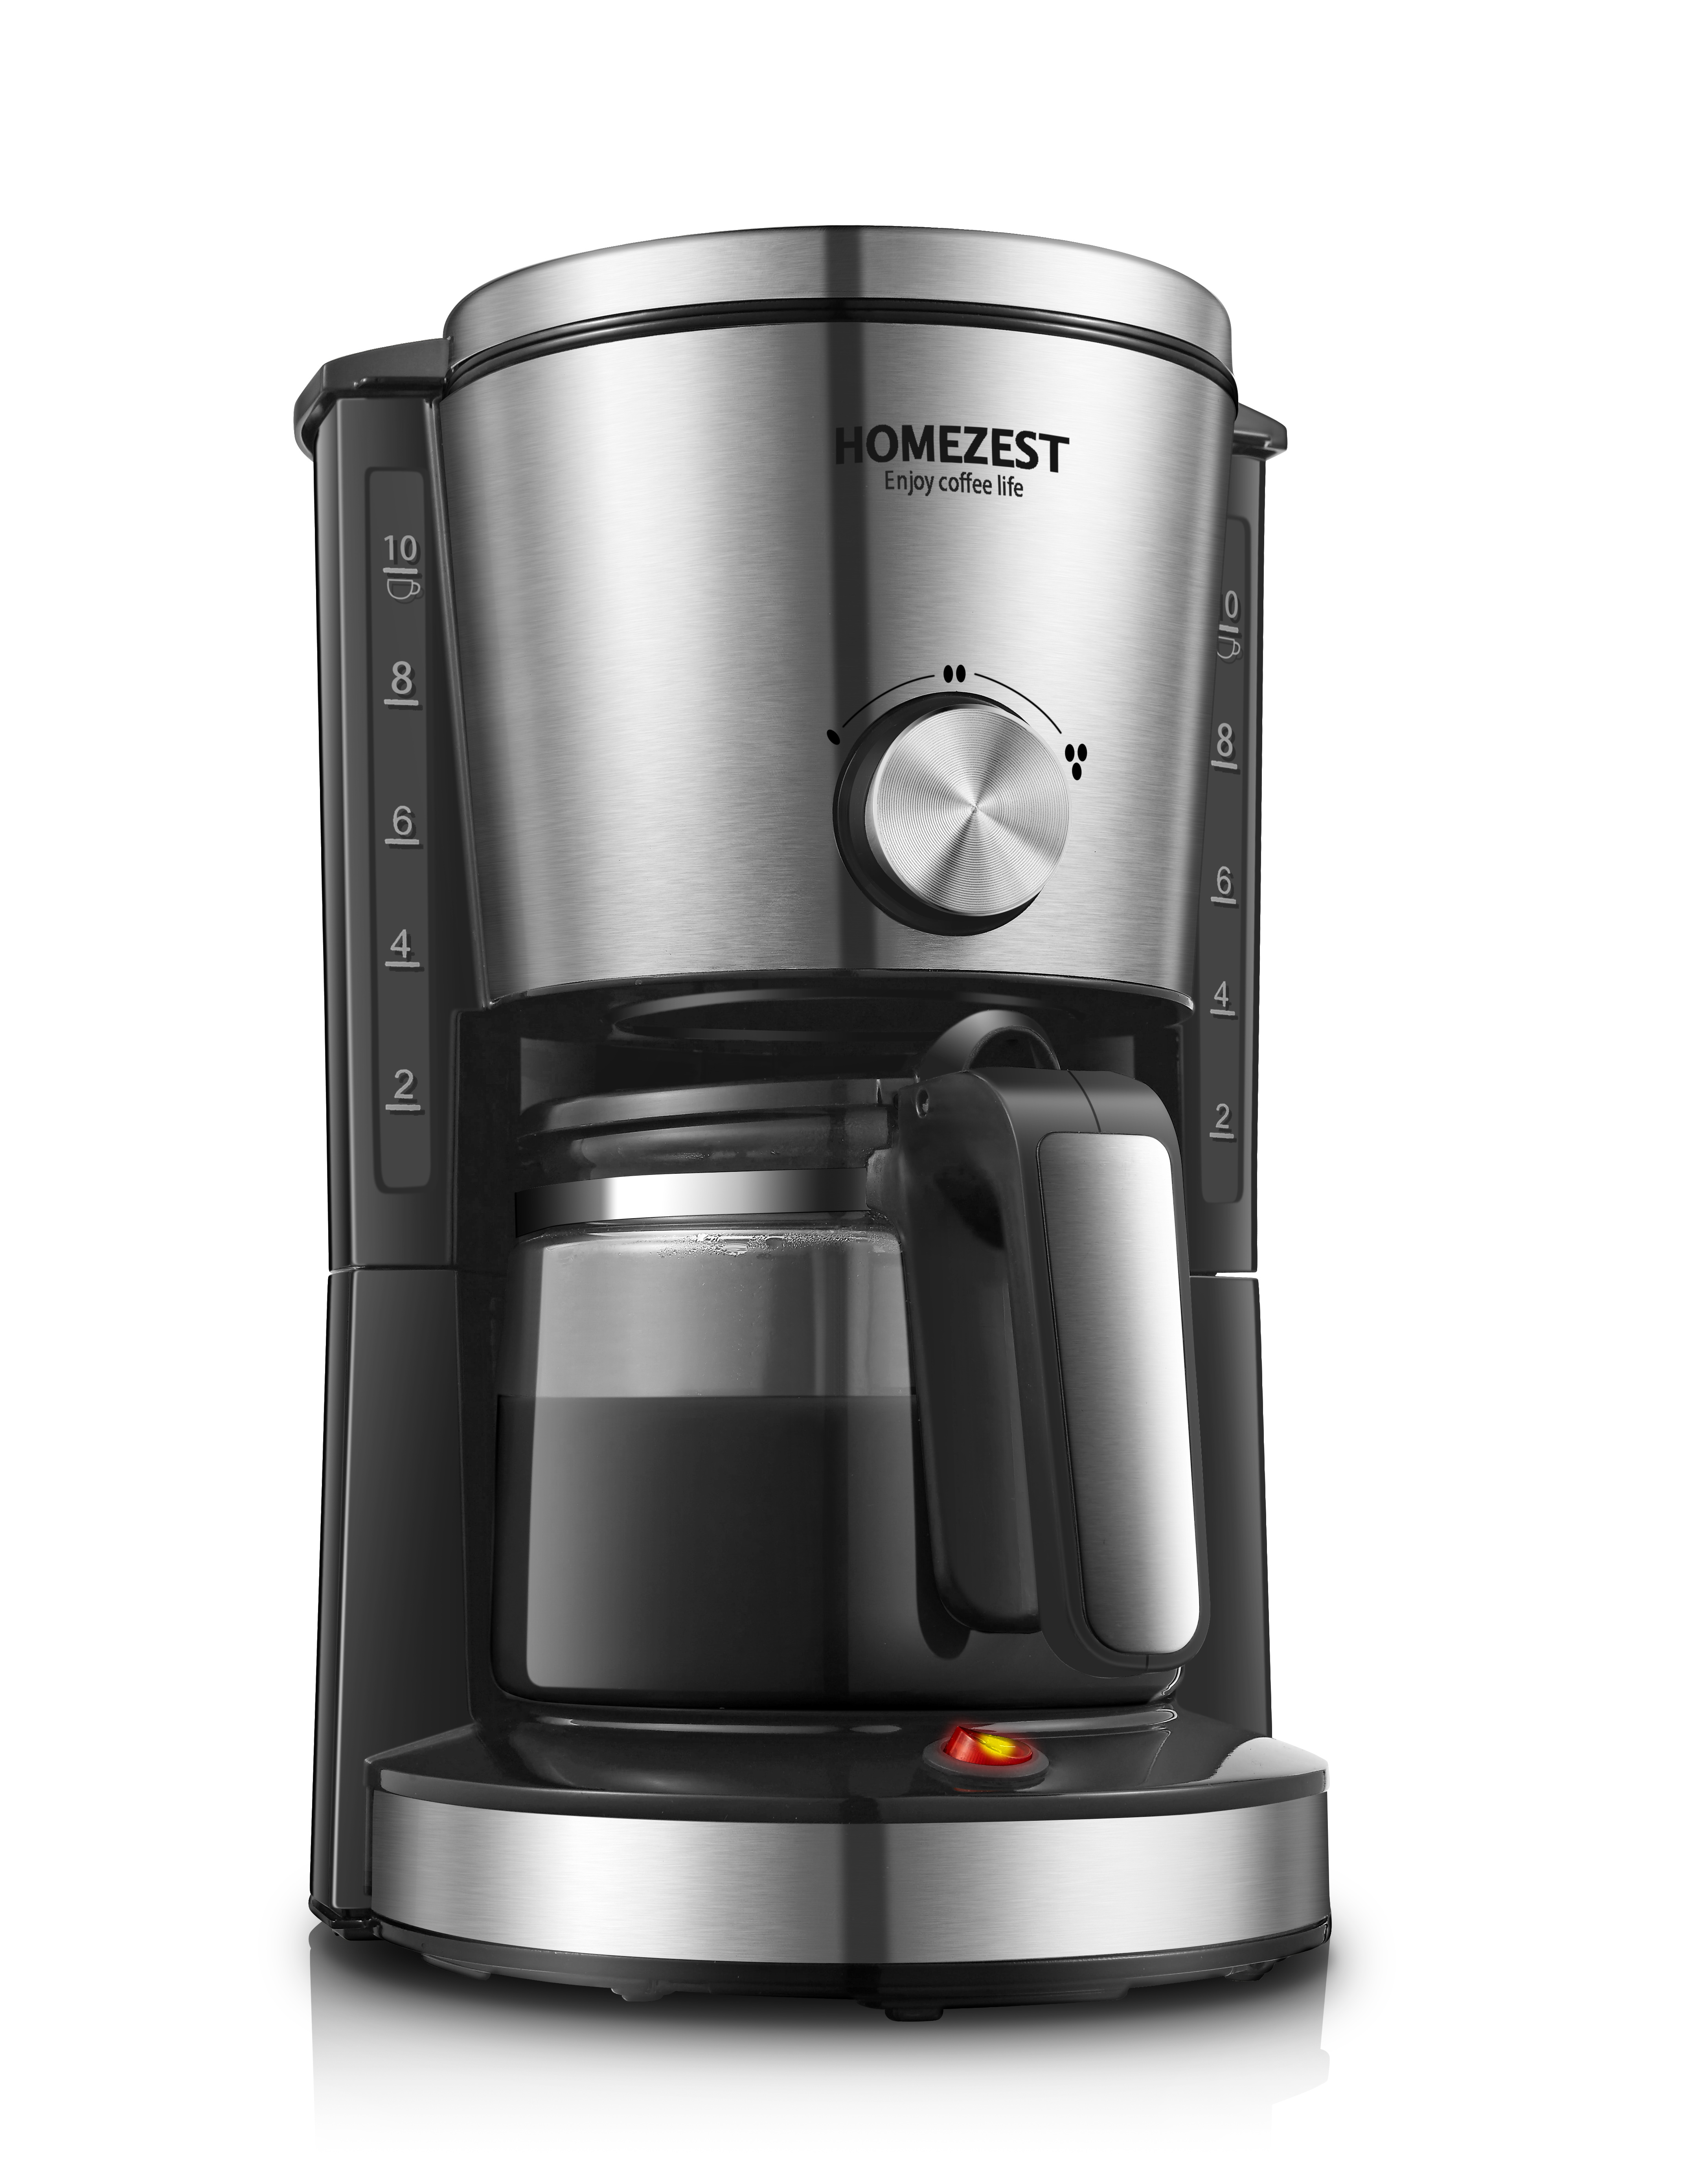 HOMEZEST CM-338BEA COFFEE Maker Drip COFFEE Machine Cups Stainless Steel 1.25L 10-12 CB Ce Garage Hotel Household ROHS 2 Years